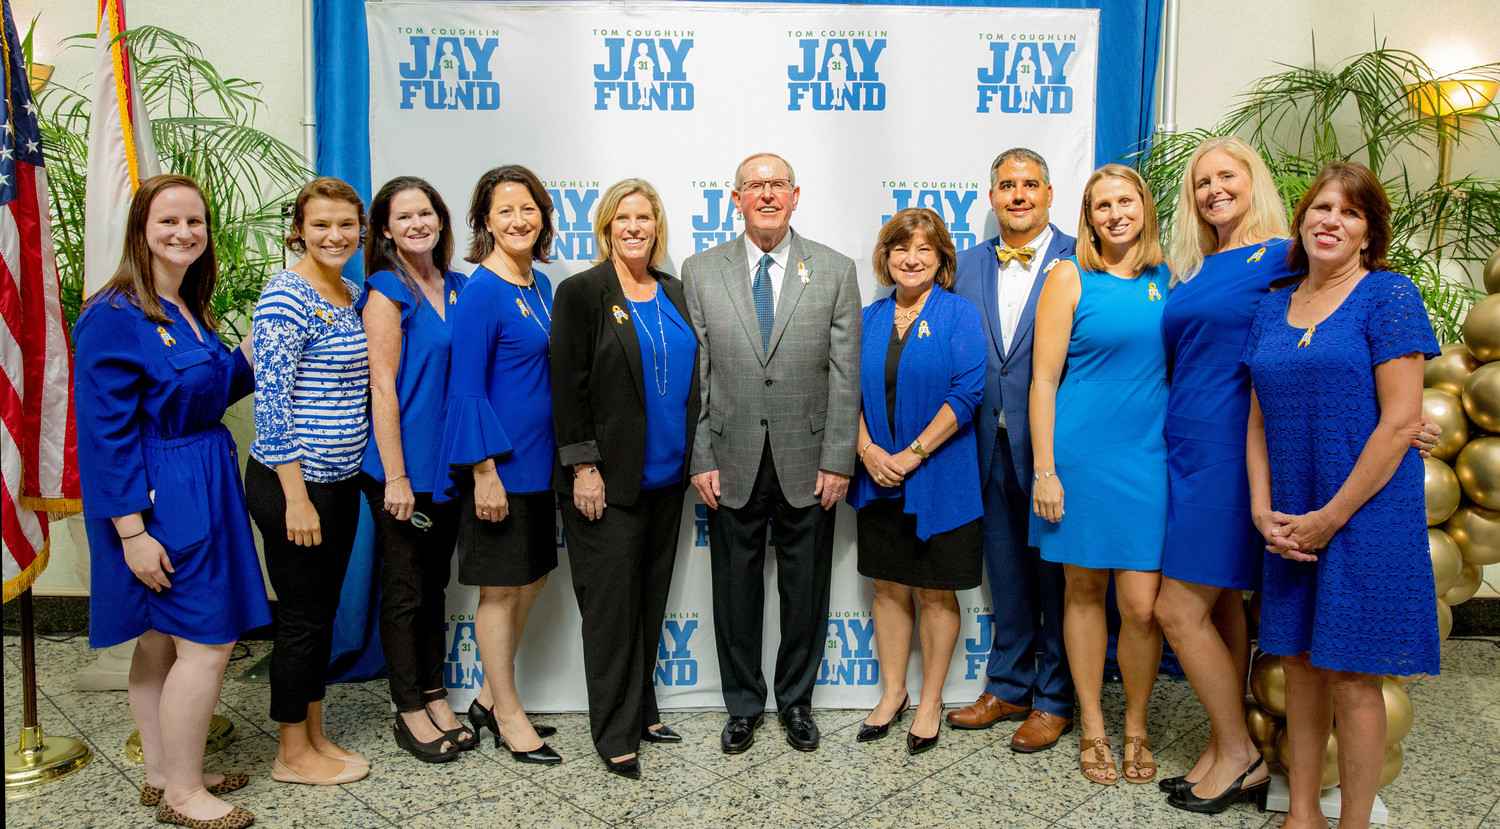 The Jay Fund staff gathers at the City of Jacksonville proclamation event at City Hall on Sept. 5.